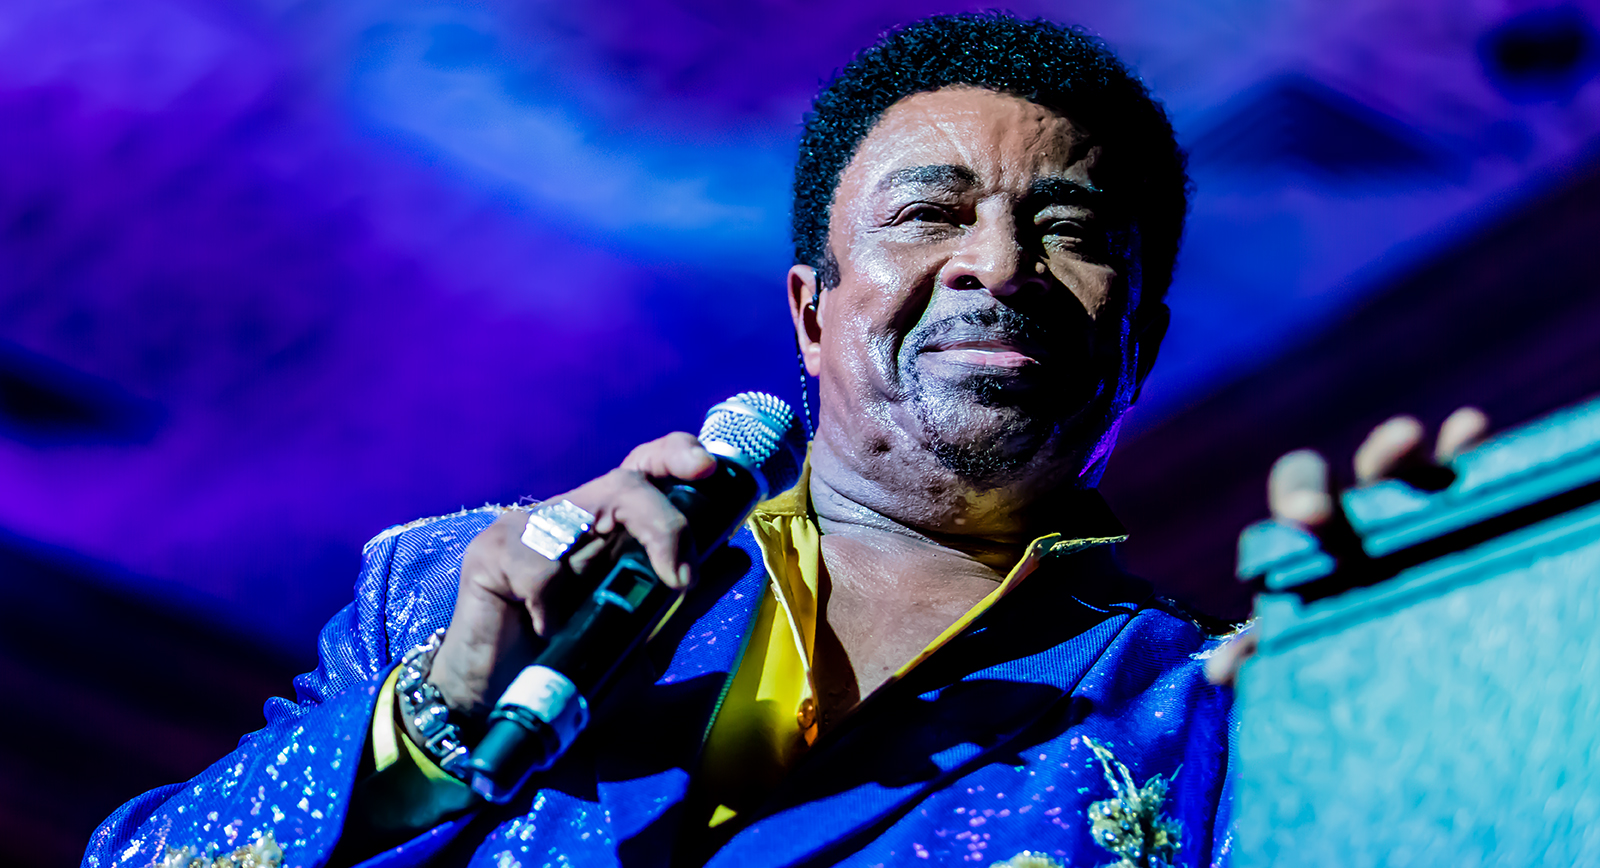 The-Temptations-Concert-Review-Photos-Thunder-Valley-FI